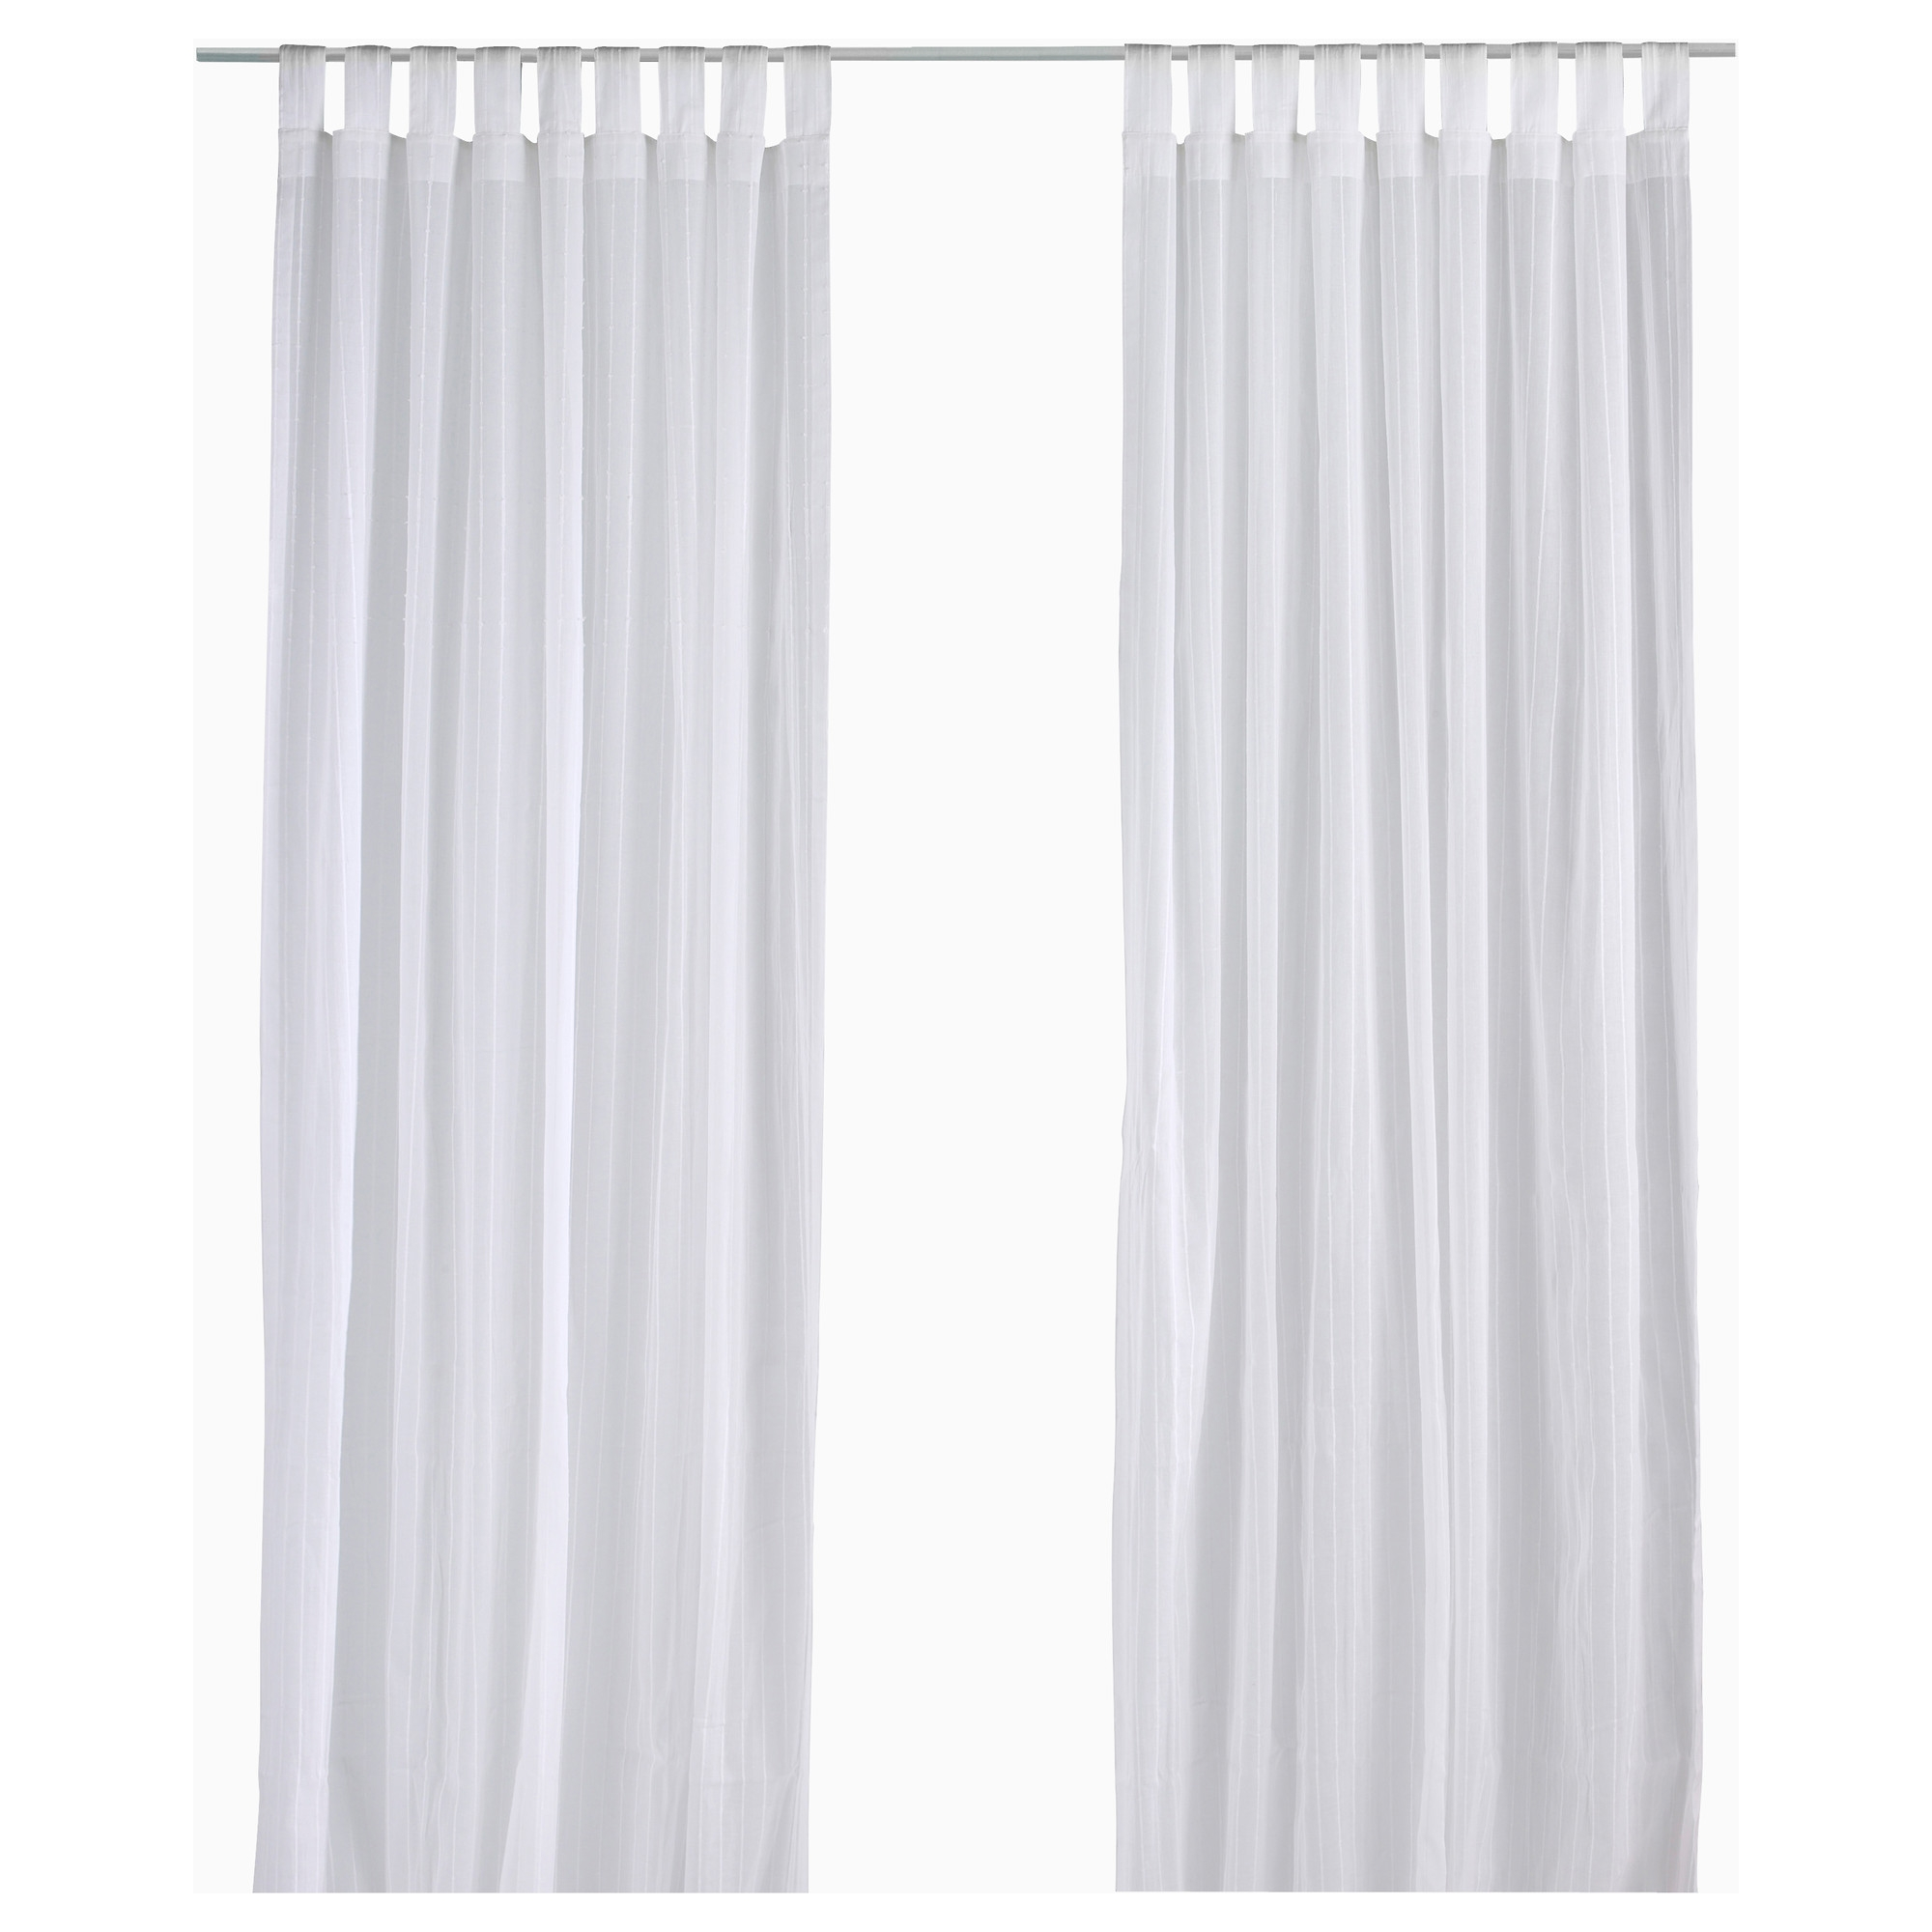 Interior 54 Inch Length Curtains And 63 Inch Curtains With With Regard To 63 Inches Long Curtains (Image 18 of 25)